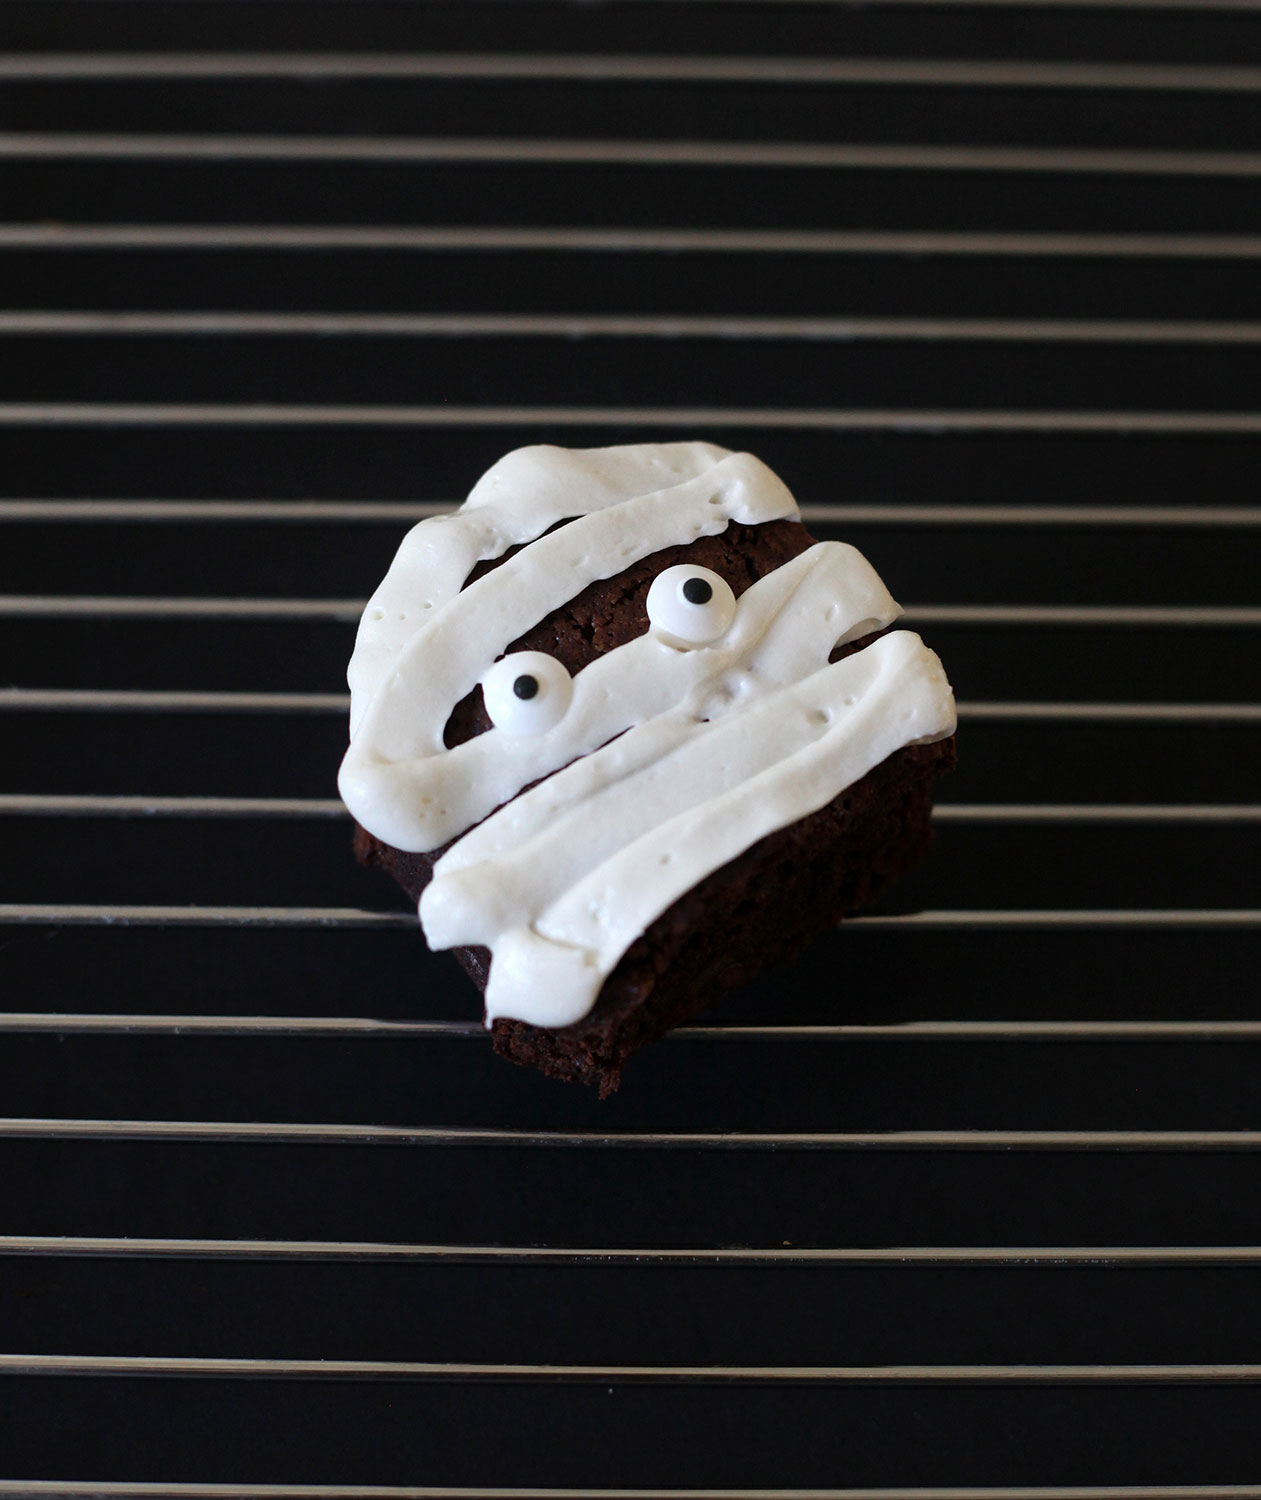 Halloween desserts and Halloween treats - Yummy Mummies Brownies